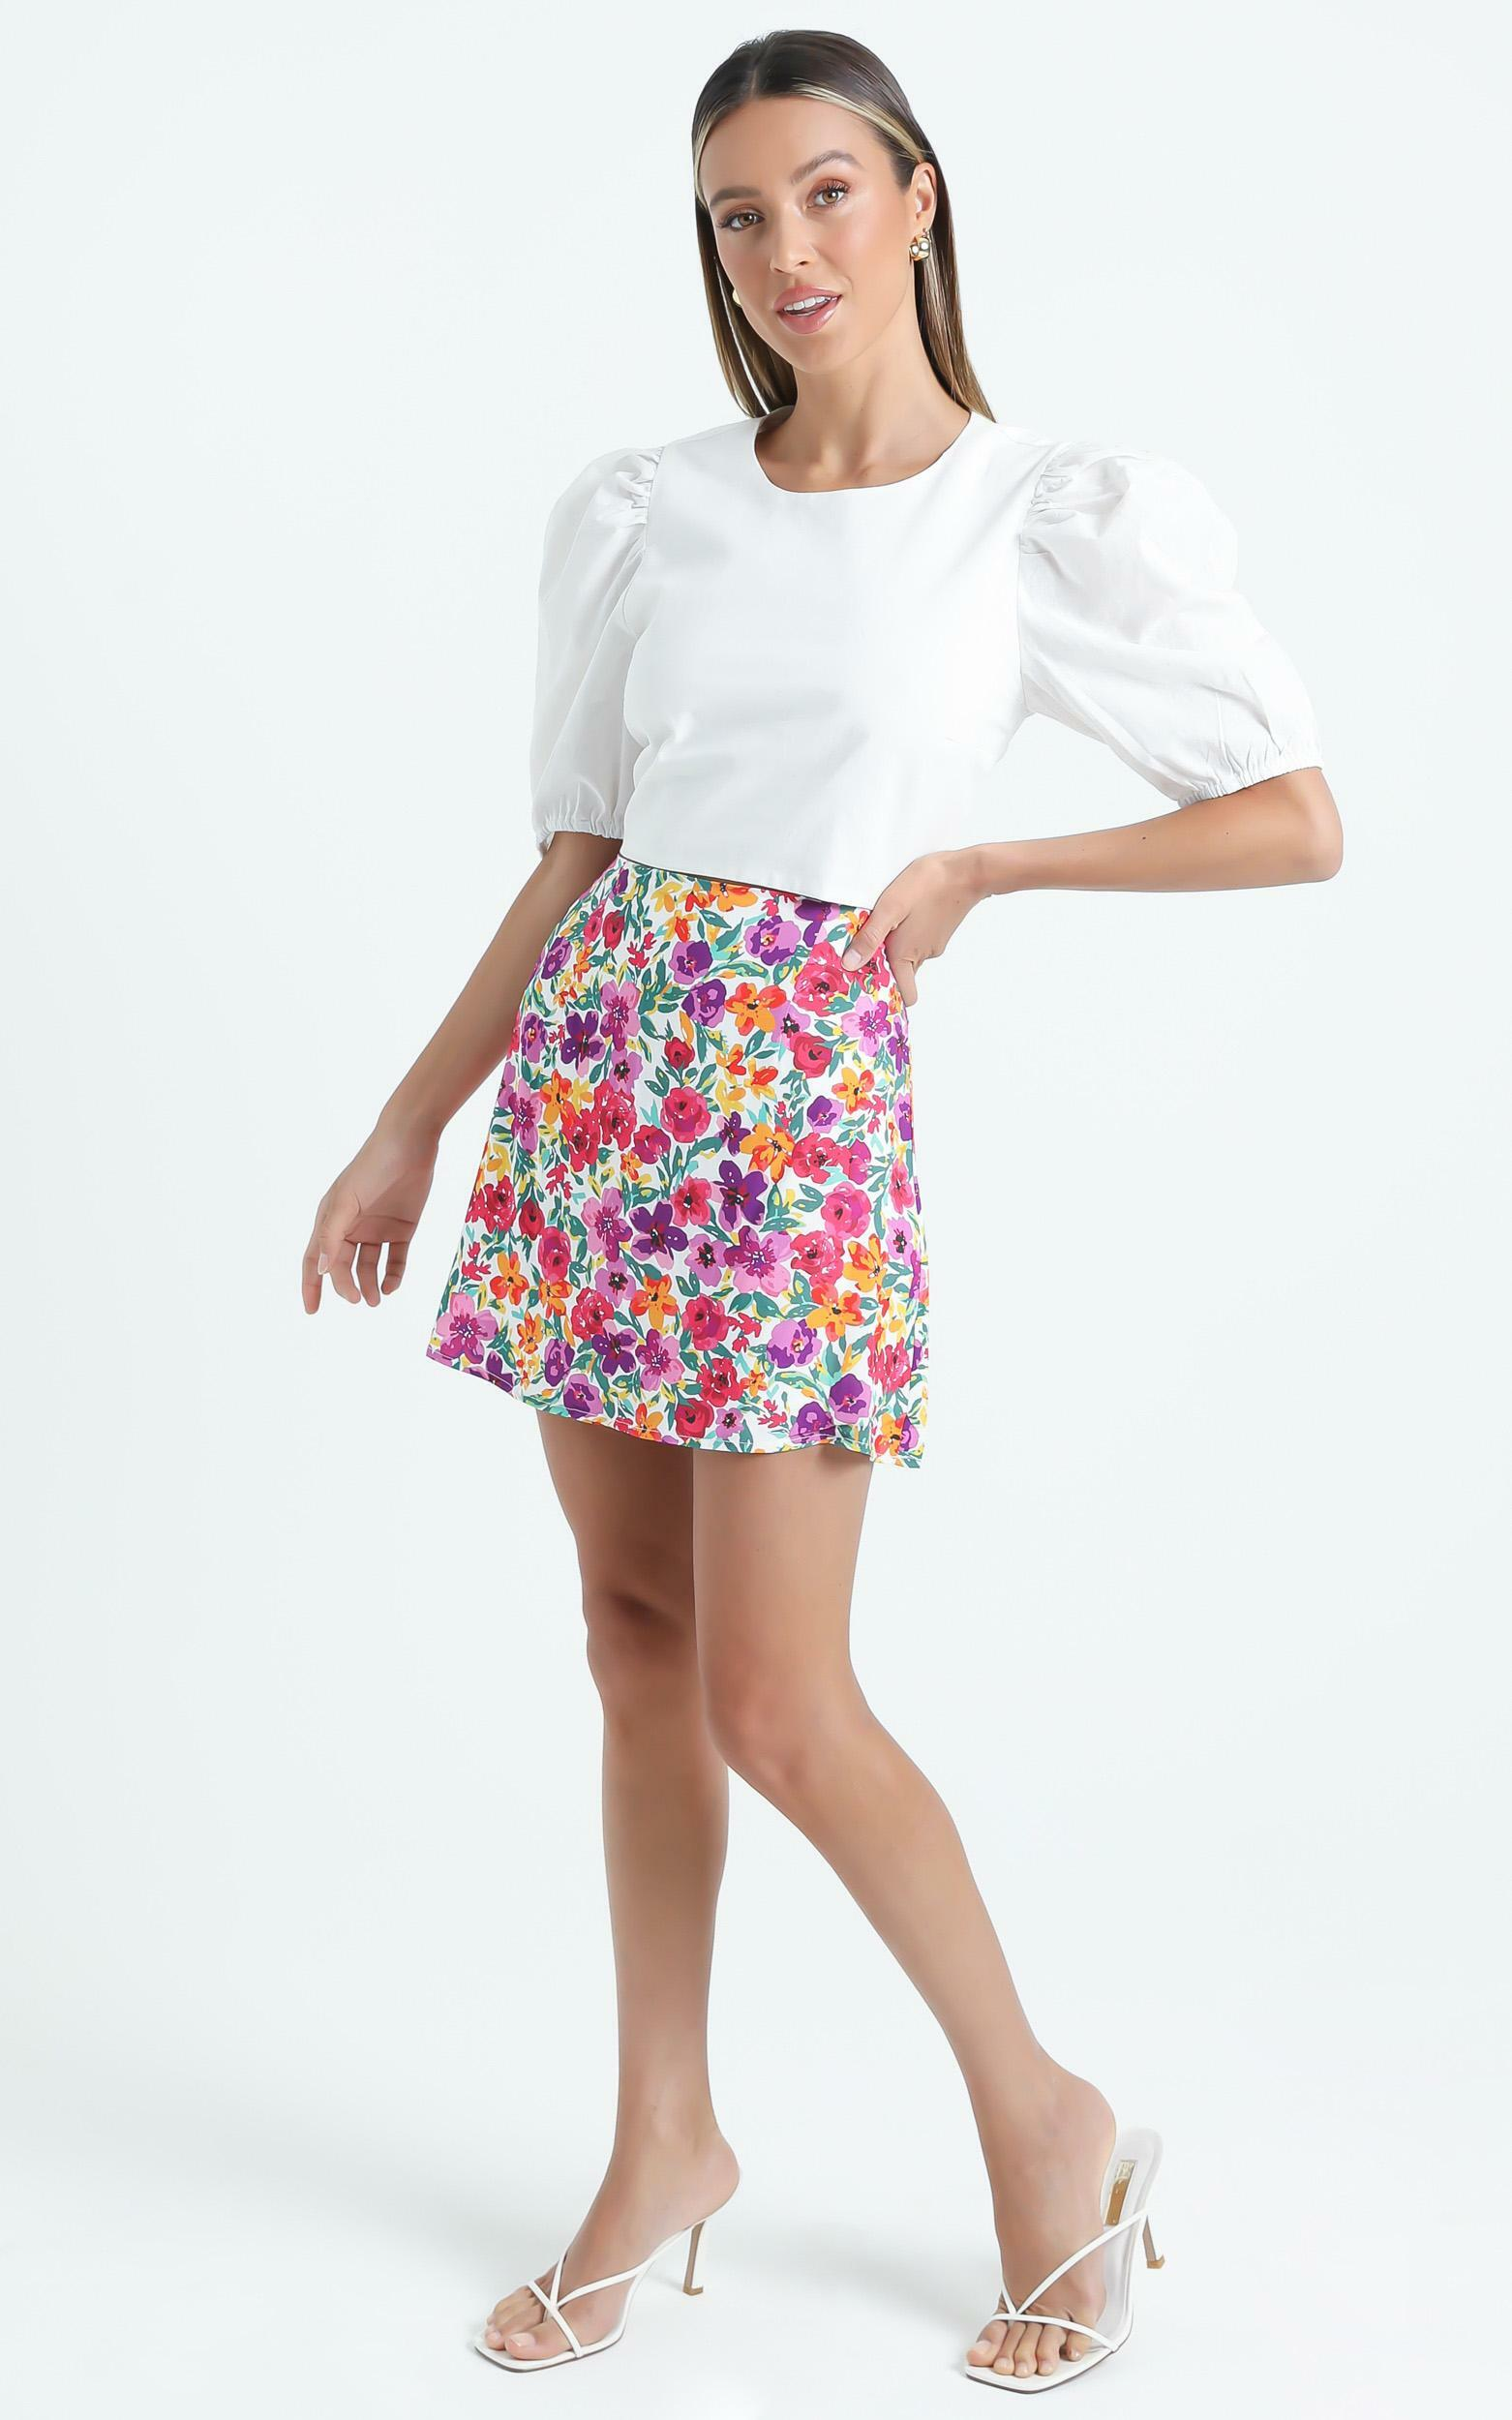 Sharnice Skirt in Packed Floral - 6 (XS), MLT1, hi-res image number null